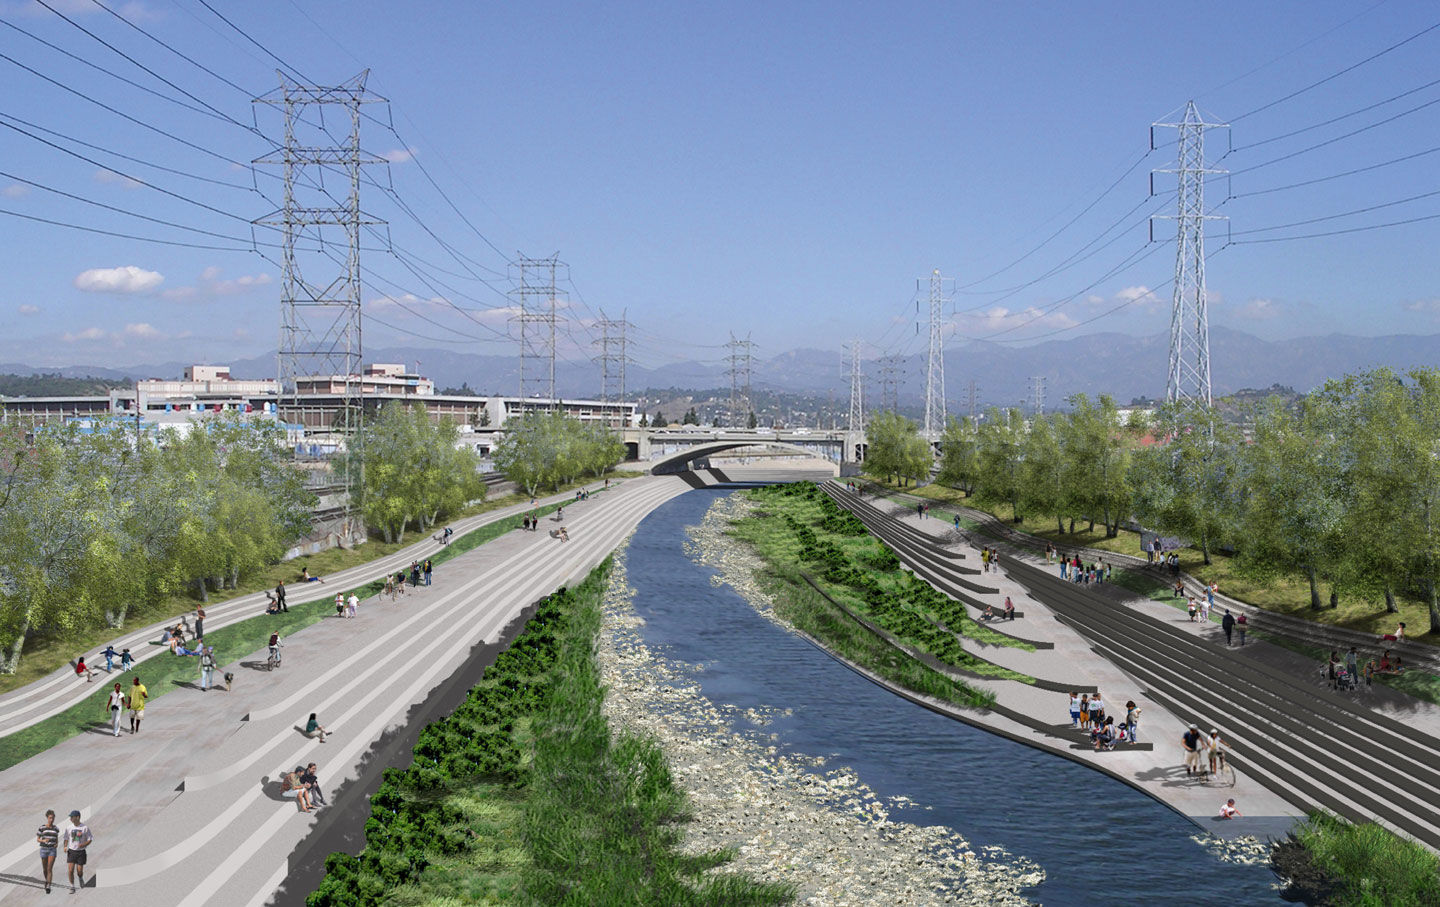 evolve project la la river basin elysian valley frogtowna